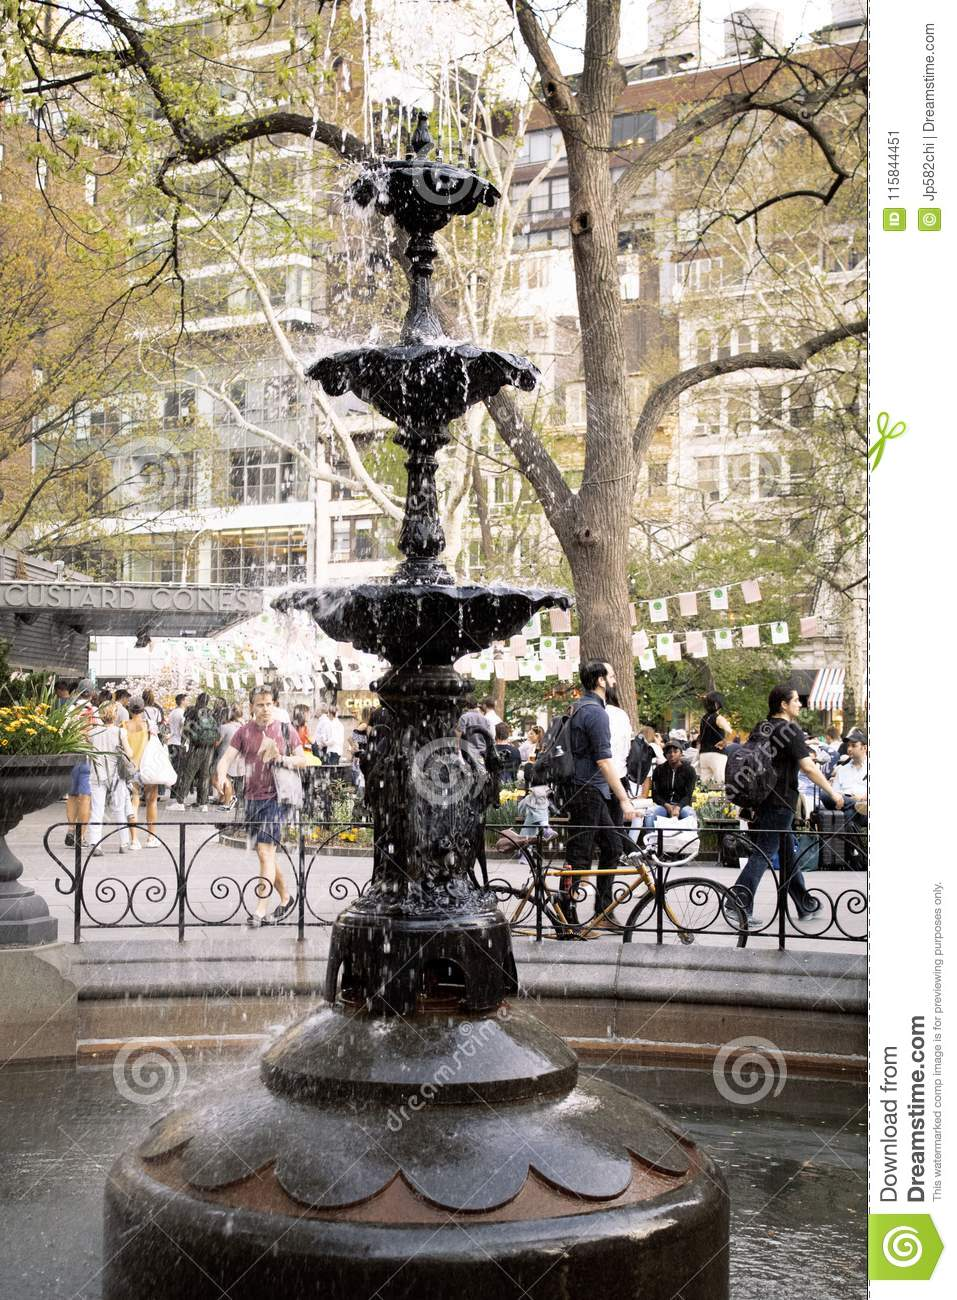 Fountain in Madison Square Park, New York City